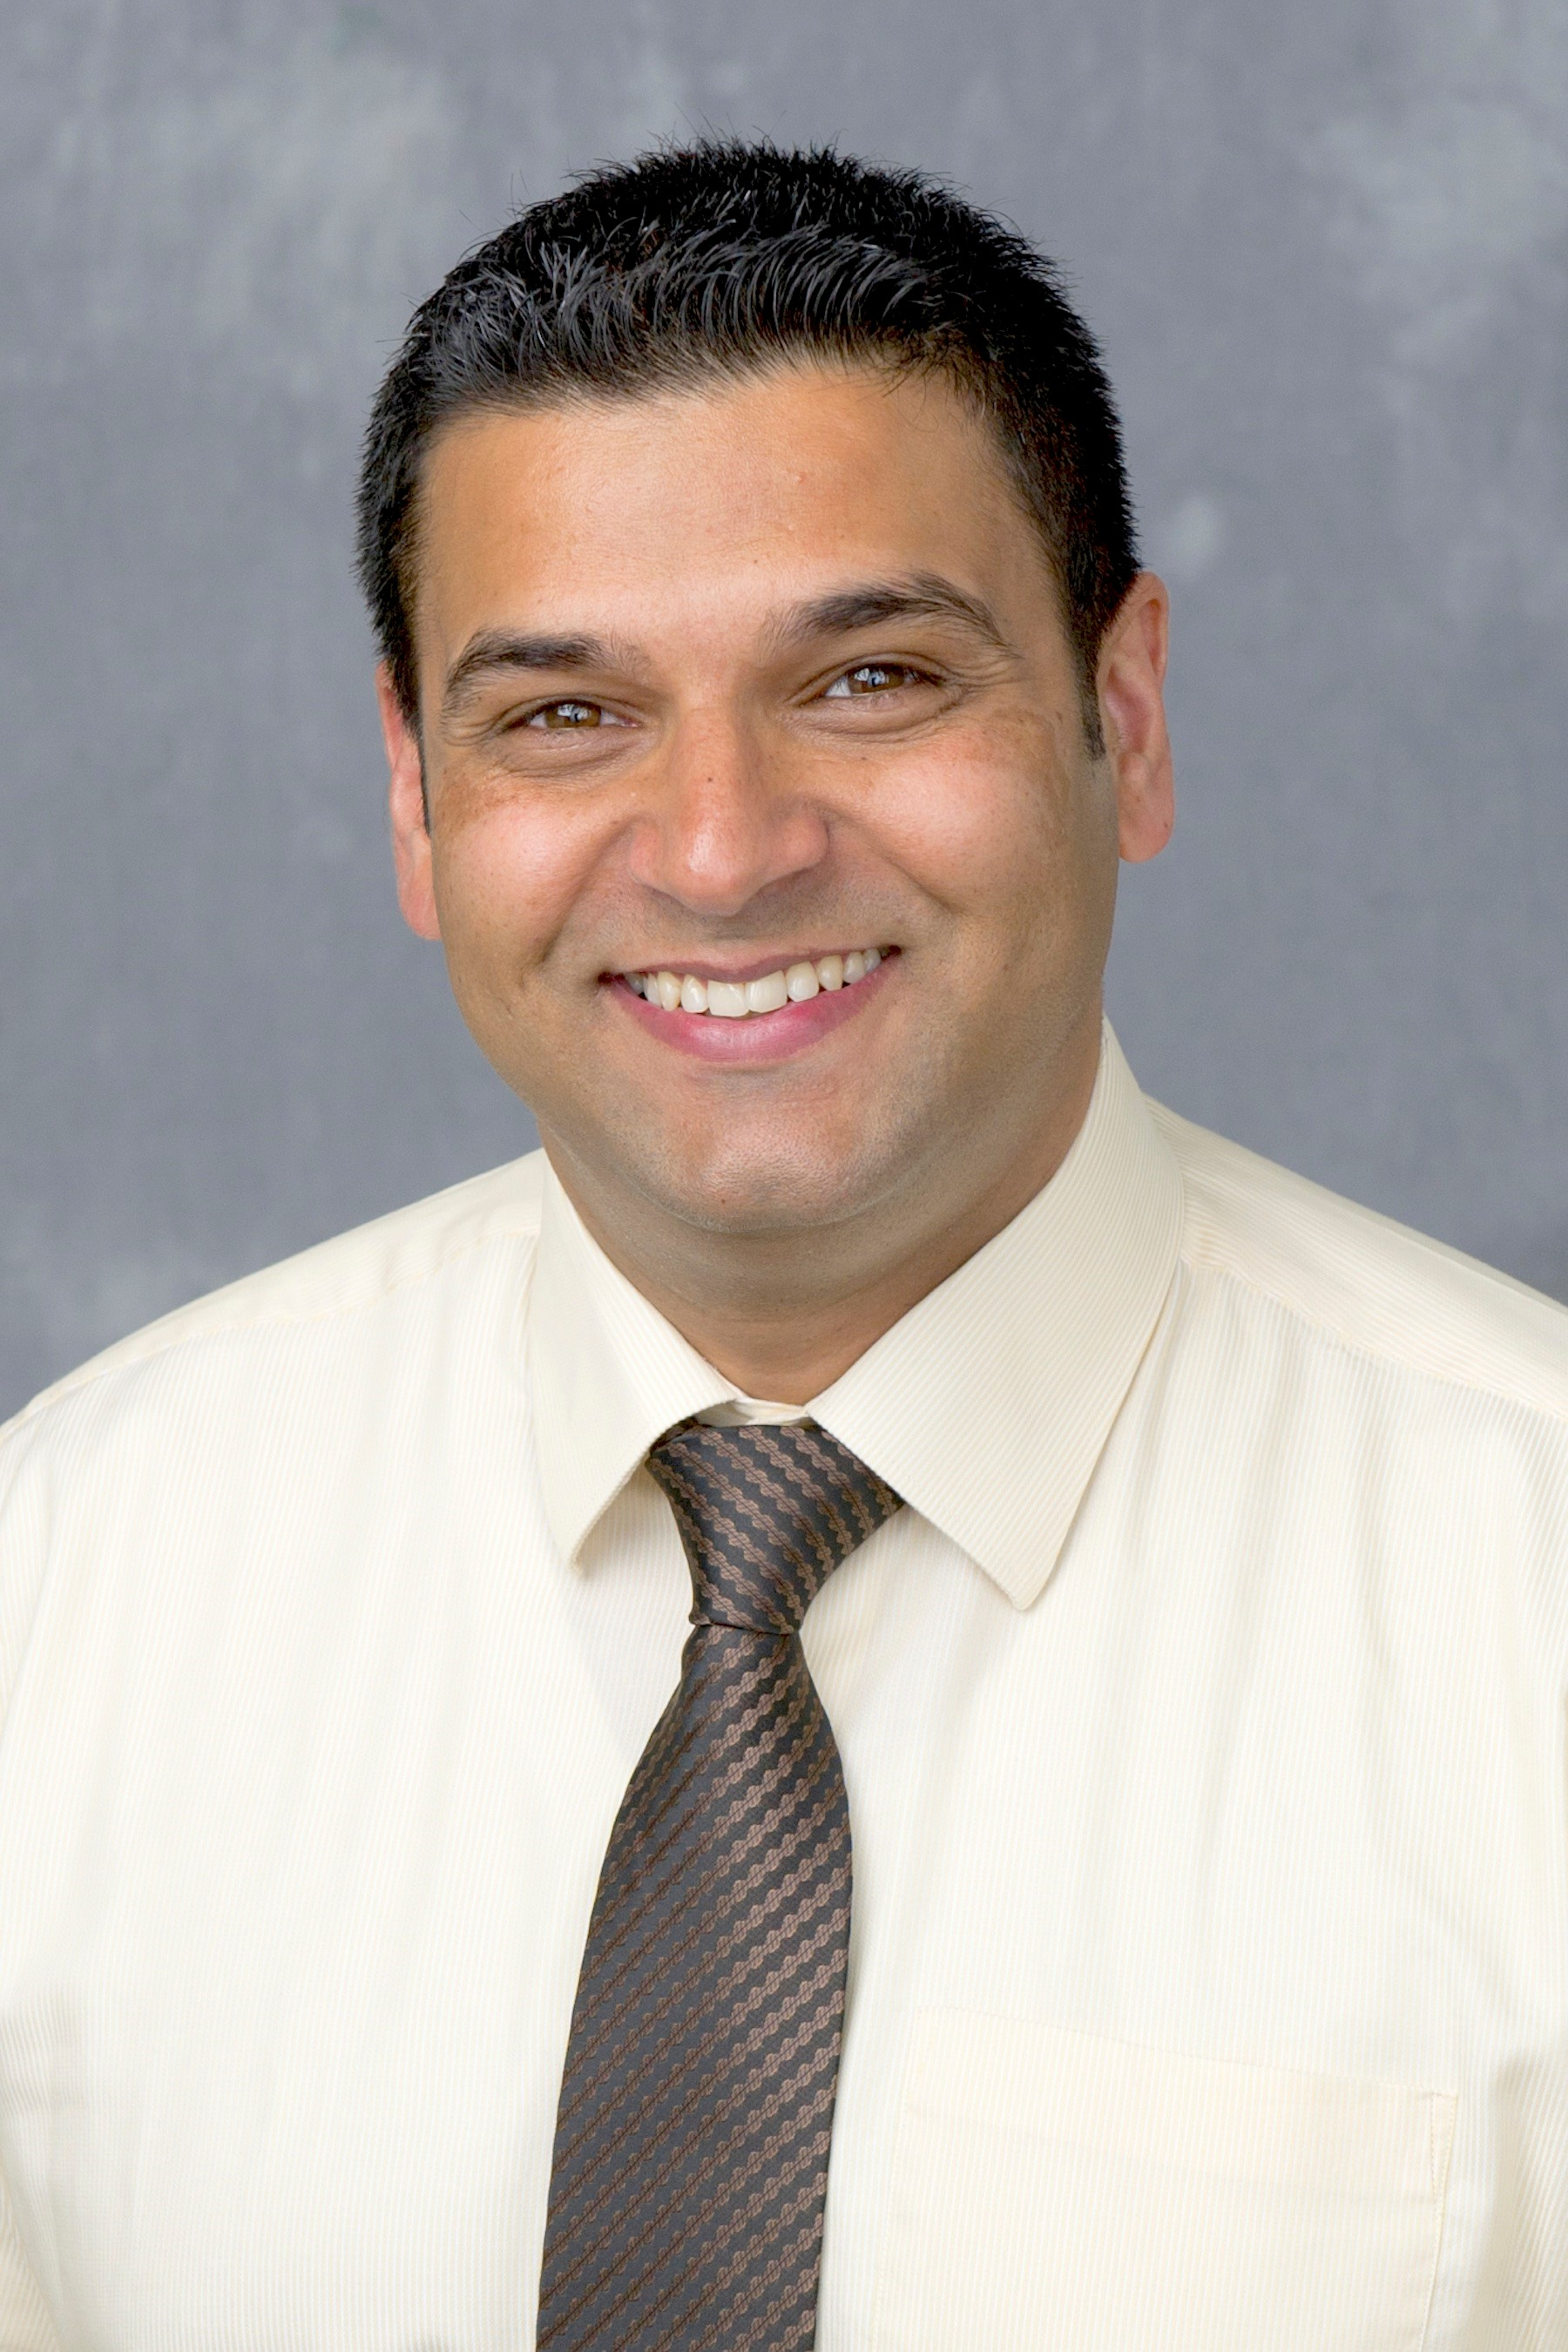 Manpreet Singh has been named head of the Department of Food Science and Technology in the UGA College of Agricultural and Environmental Sciences after serving as interim department head since September.